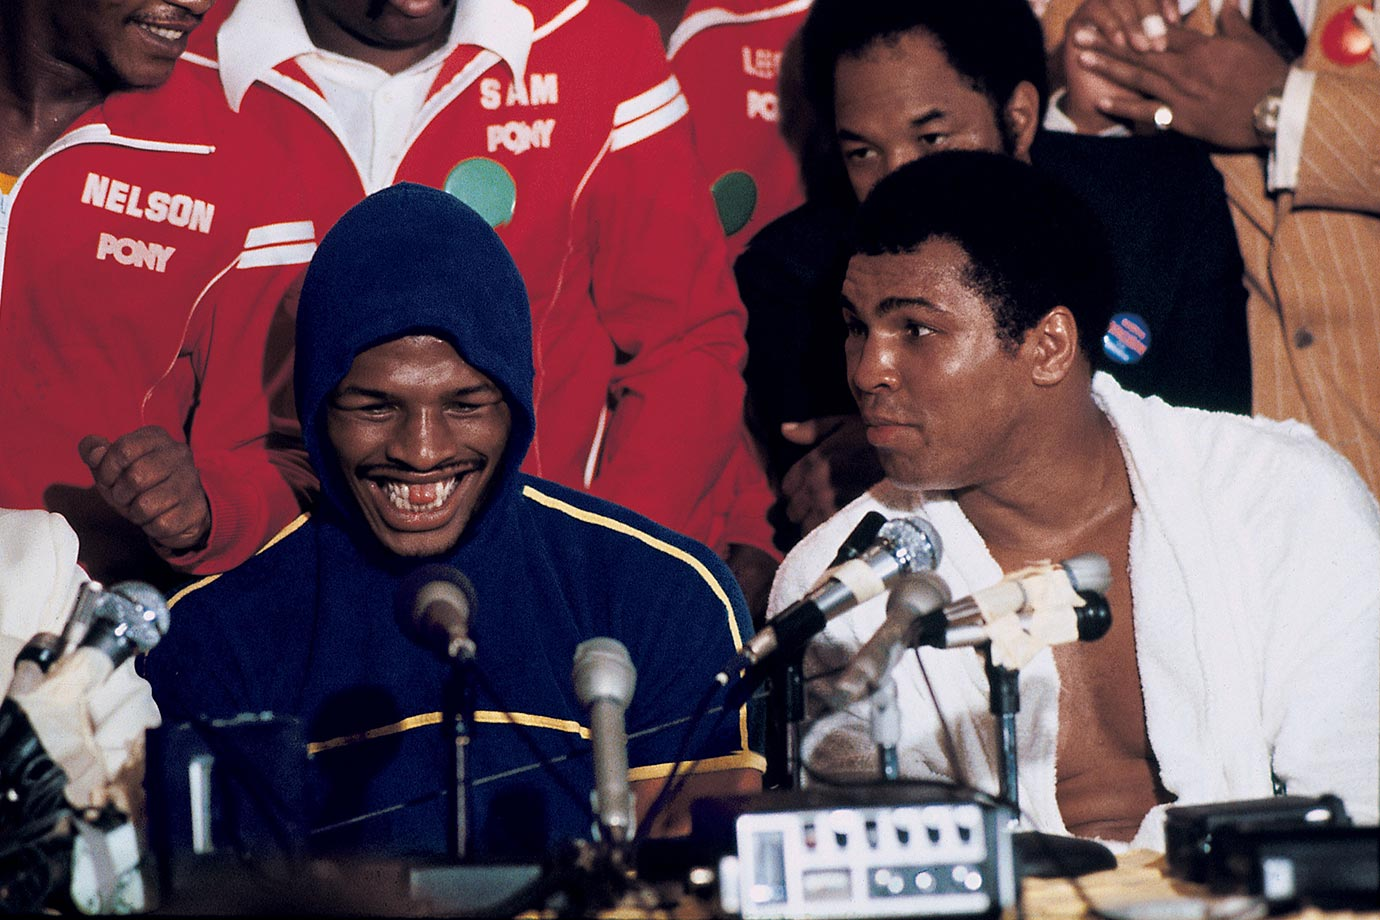 Leon Spinks took center stage over Ali at the press conference after their fight. The victorious Spinks and his gap-toothed grin were featured on the Feb. 19, 1978 cover of Sports Illustrated.